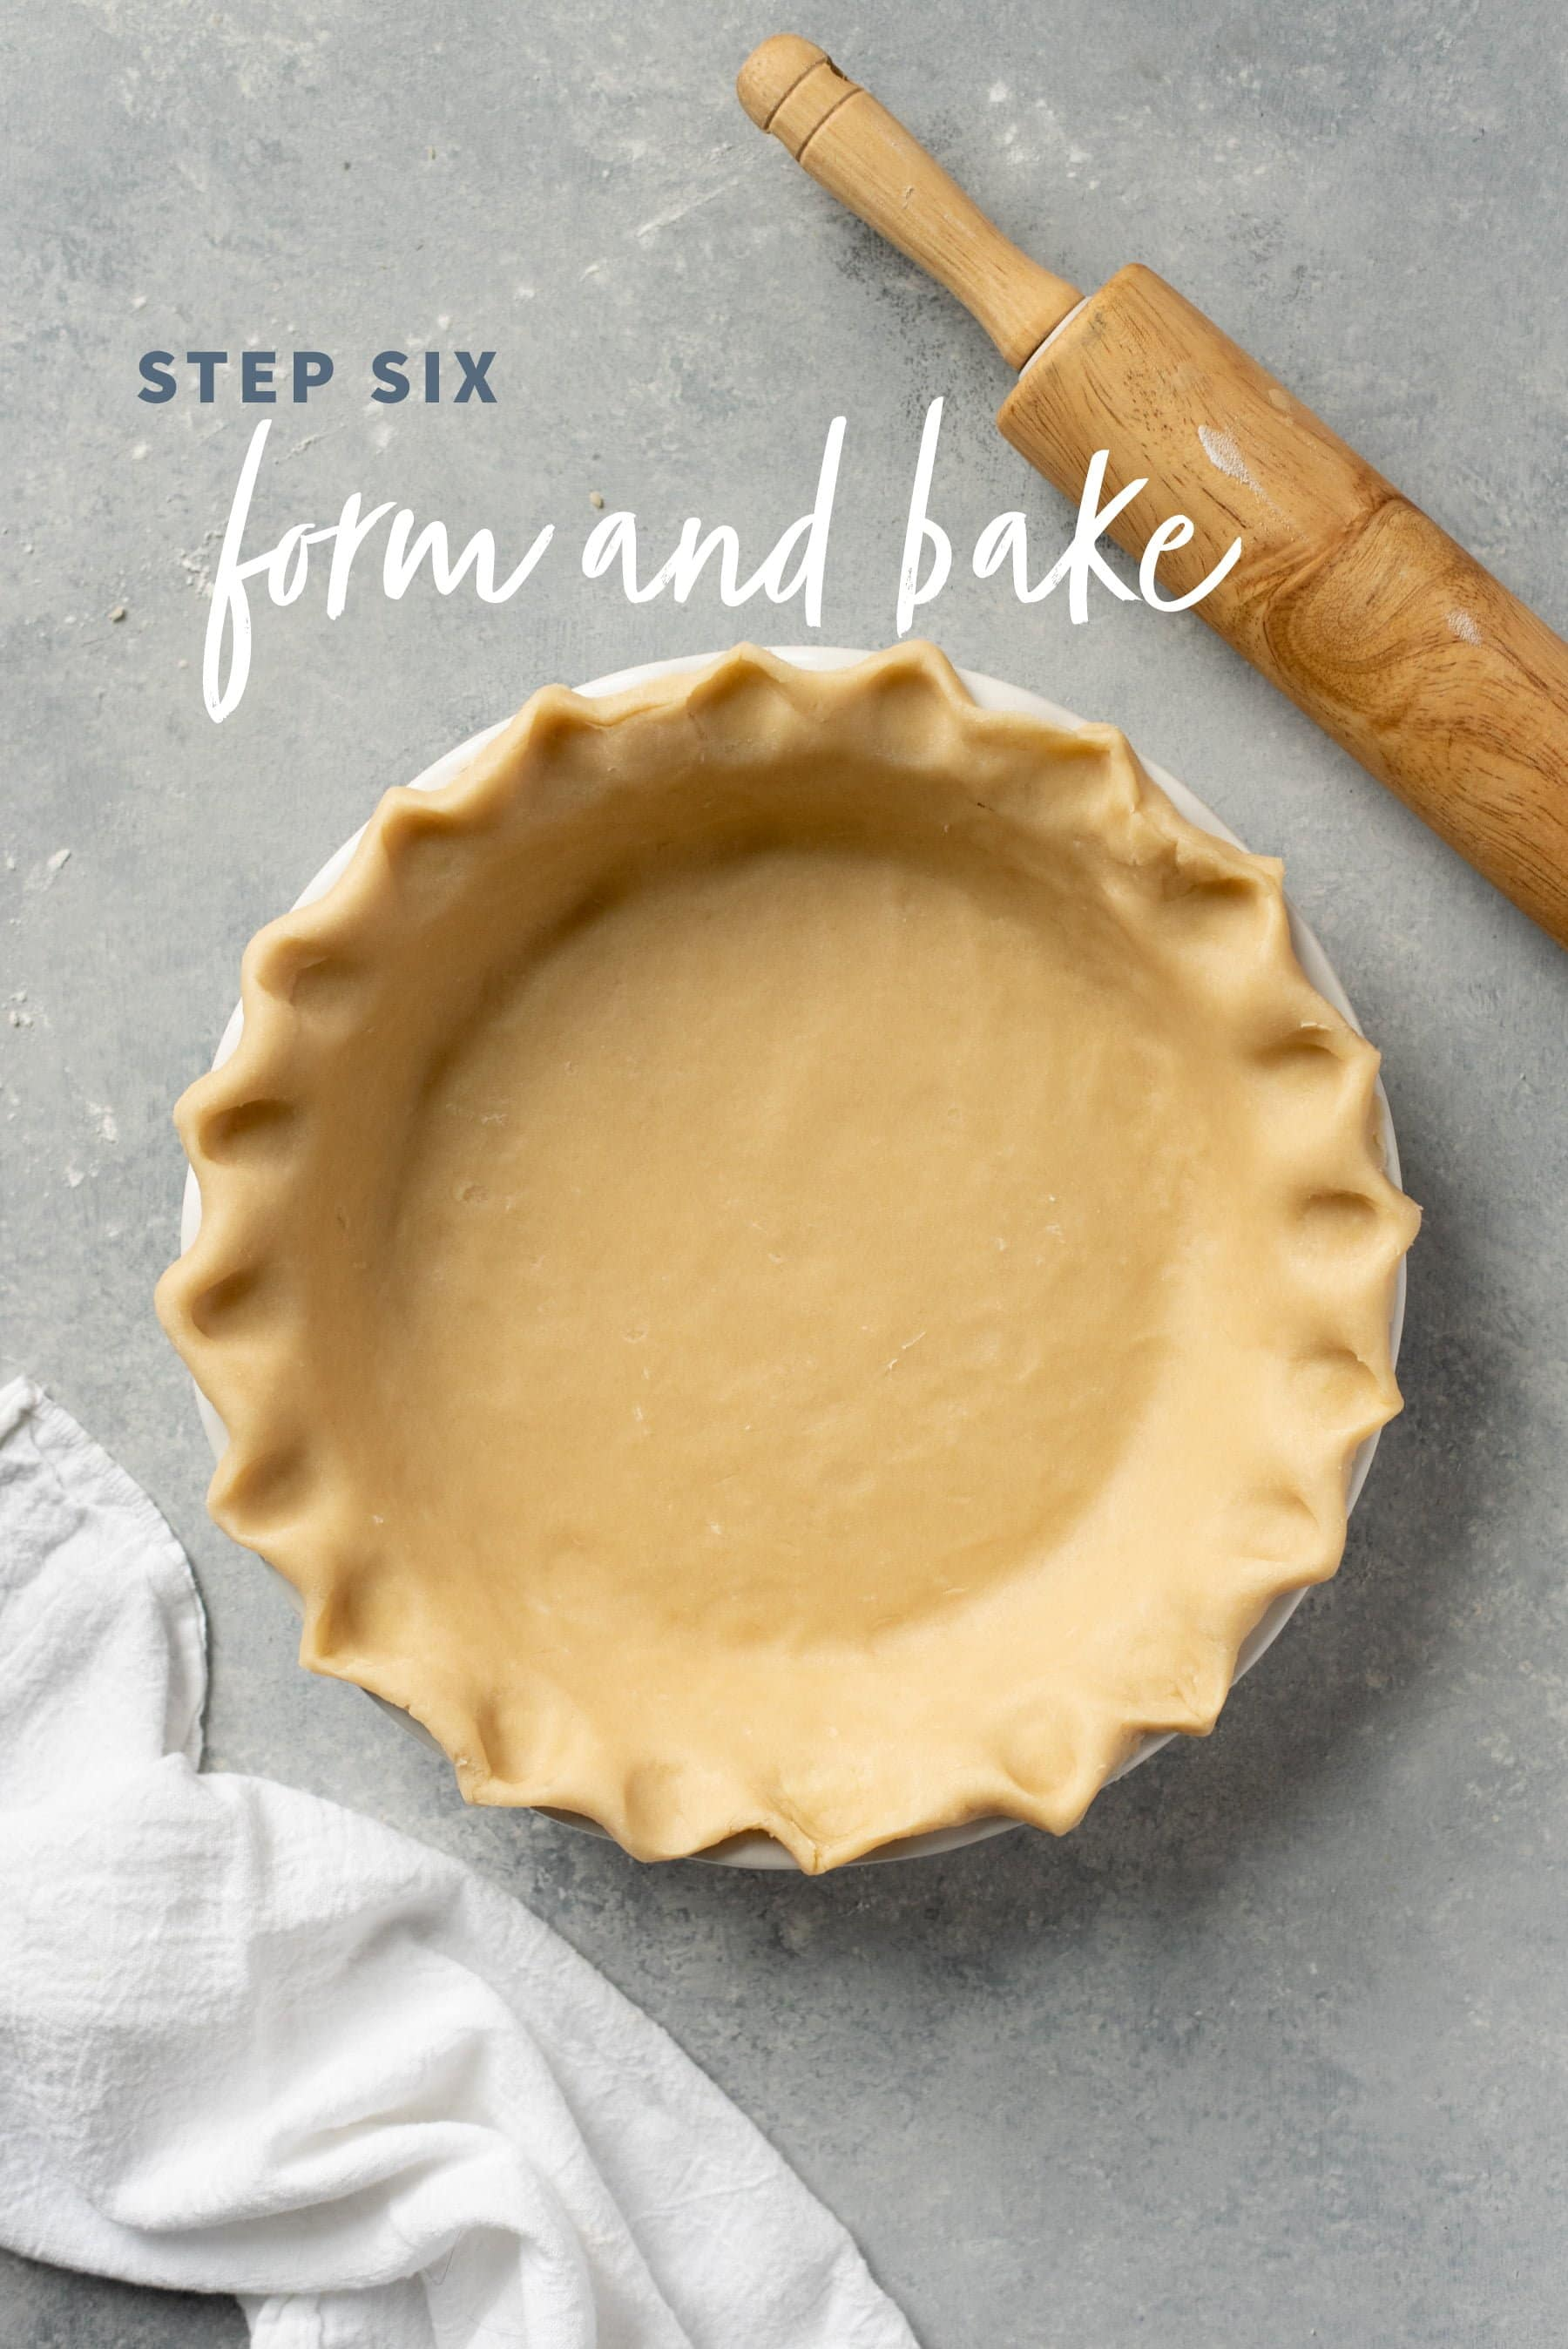 Unbaked pie crust with fluted edges pressed into a pie pan on a gray background